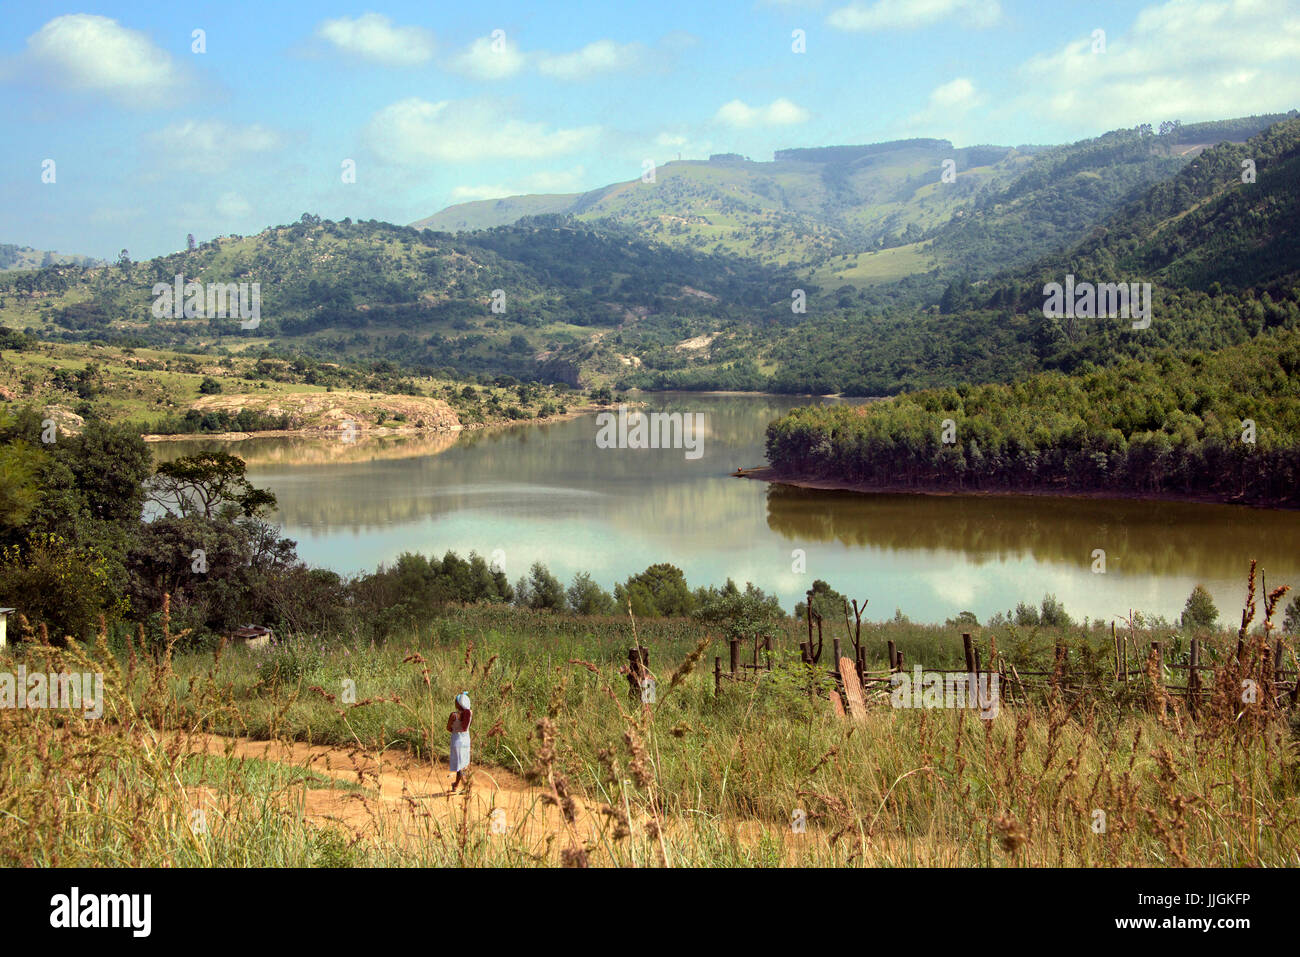 Panoramic view Lake Luphohle Elulwini Valley Central Swaziland Southern Africa - Stock Image